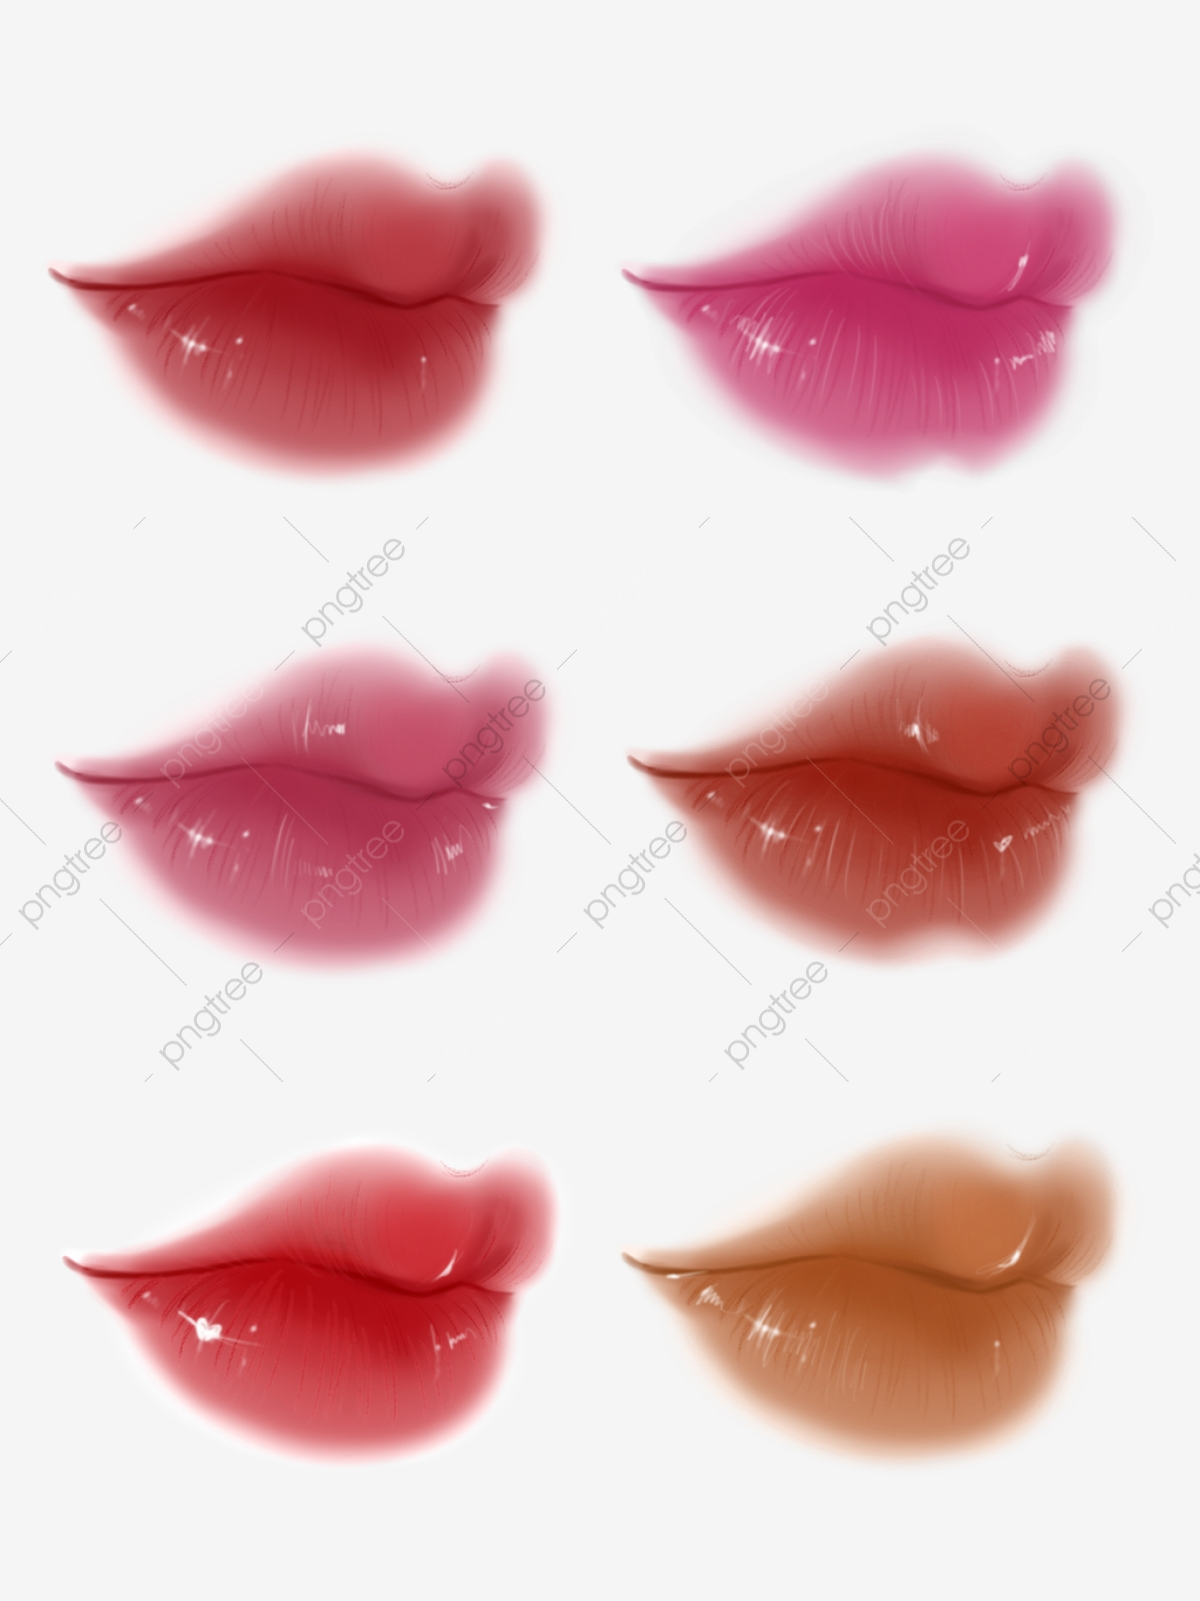 Hand painted facial features. Lips clipart side mouth